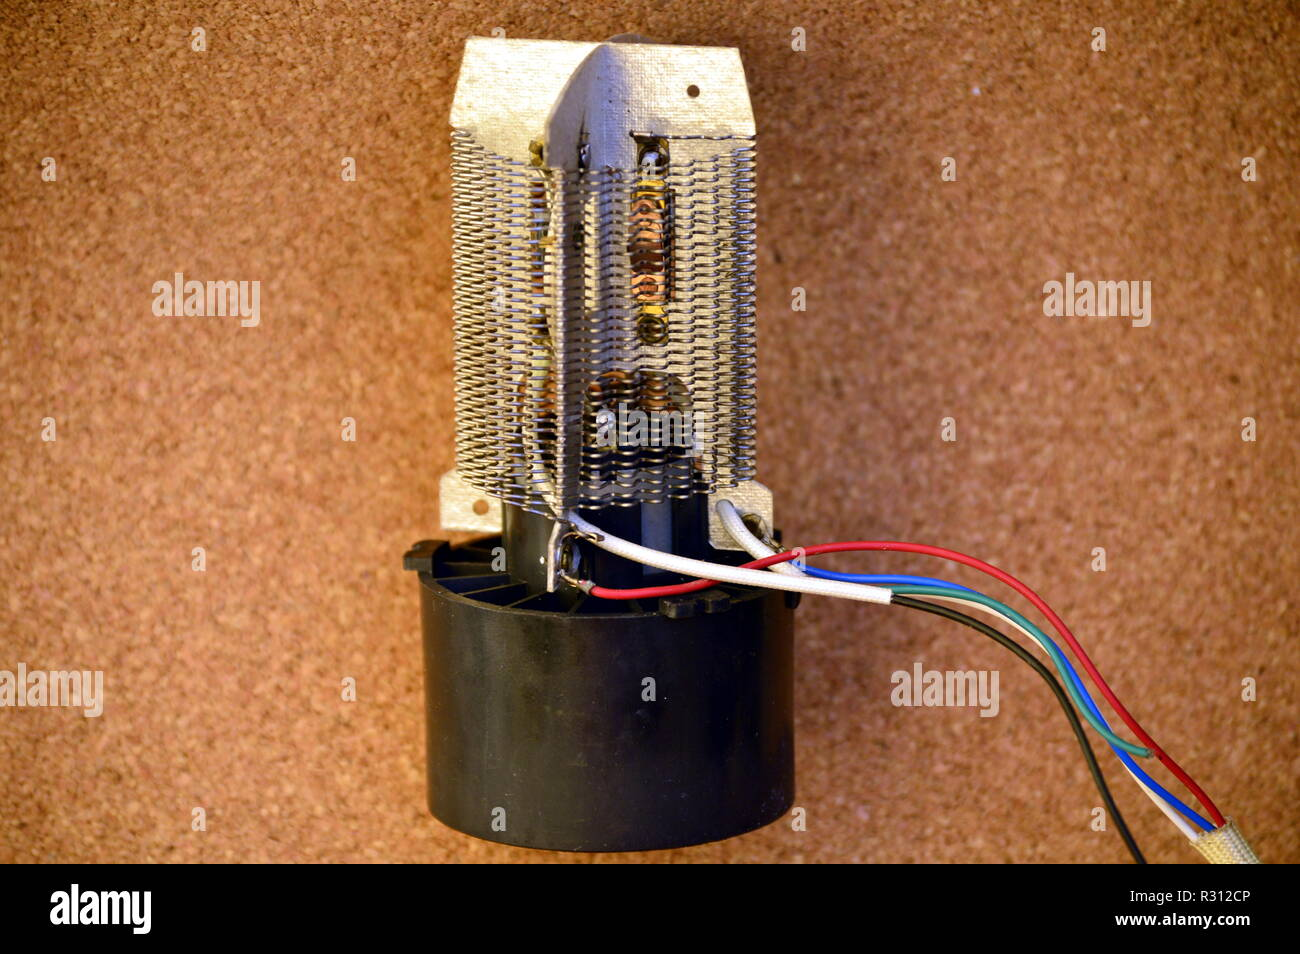 Electrical Resistance Heating Immagini e Fotos Stock Alamy